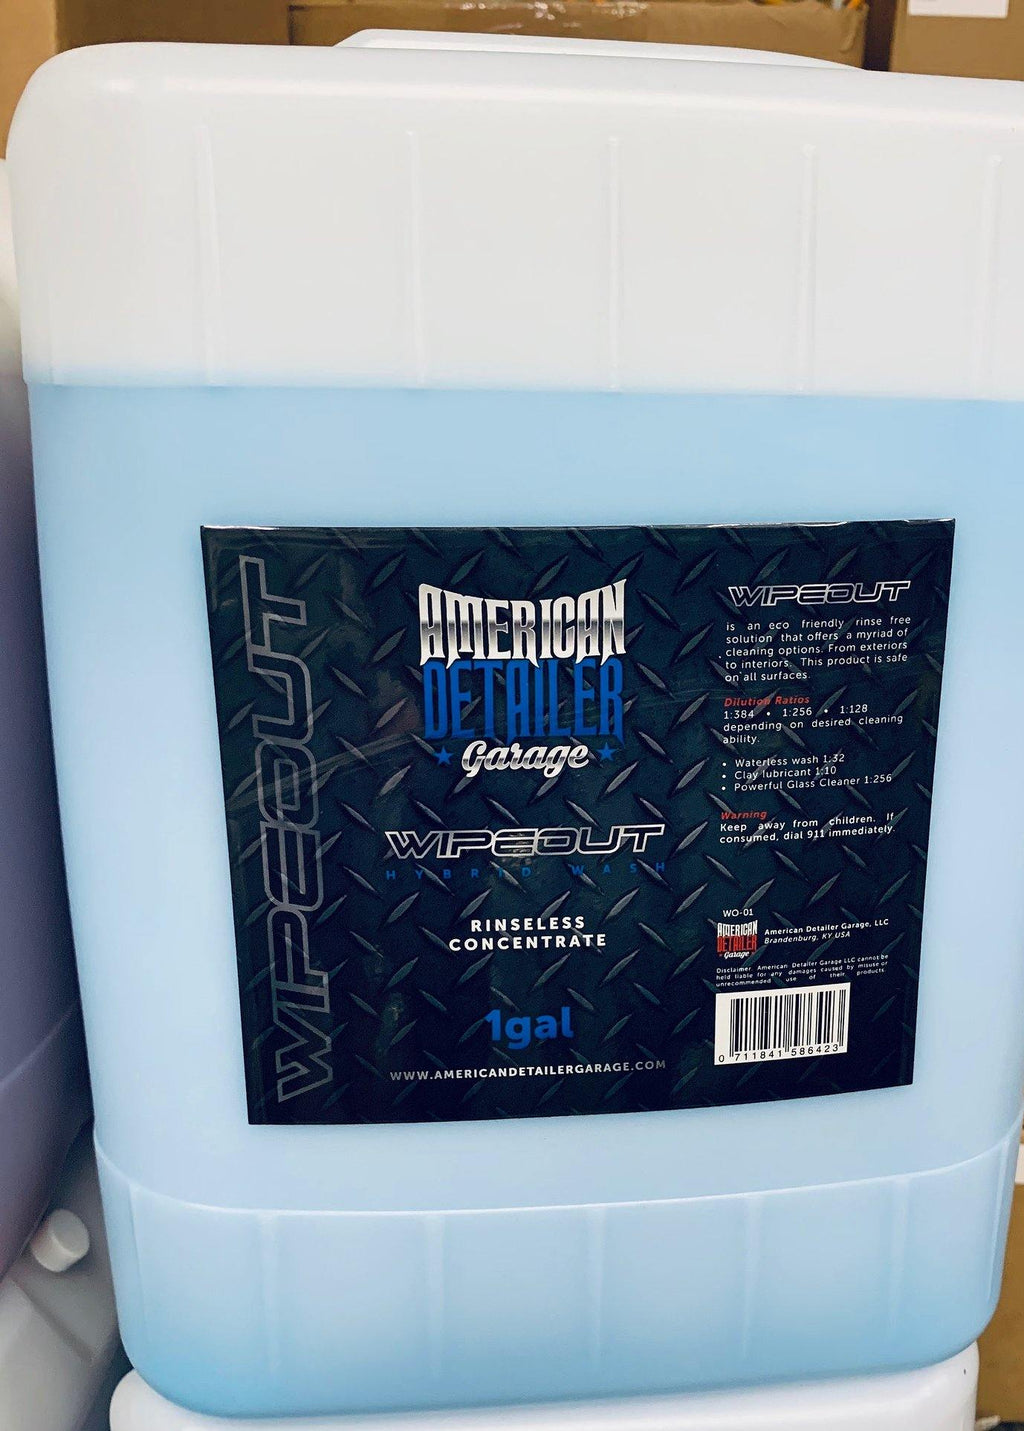 5 Gallons of Wipeout - American Detailer Garage